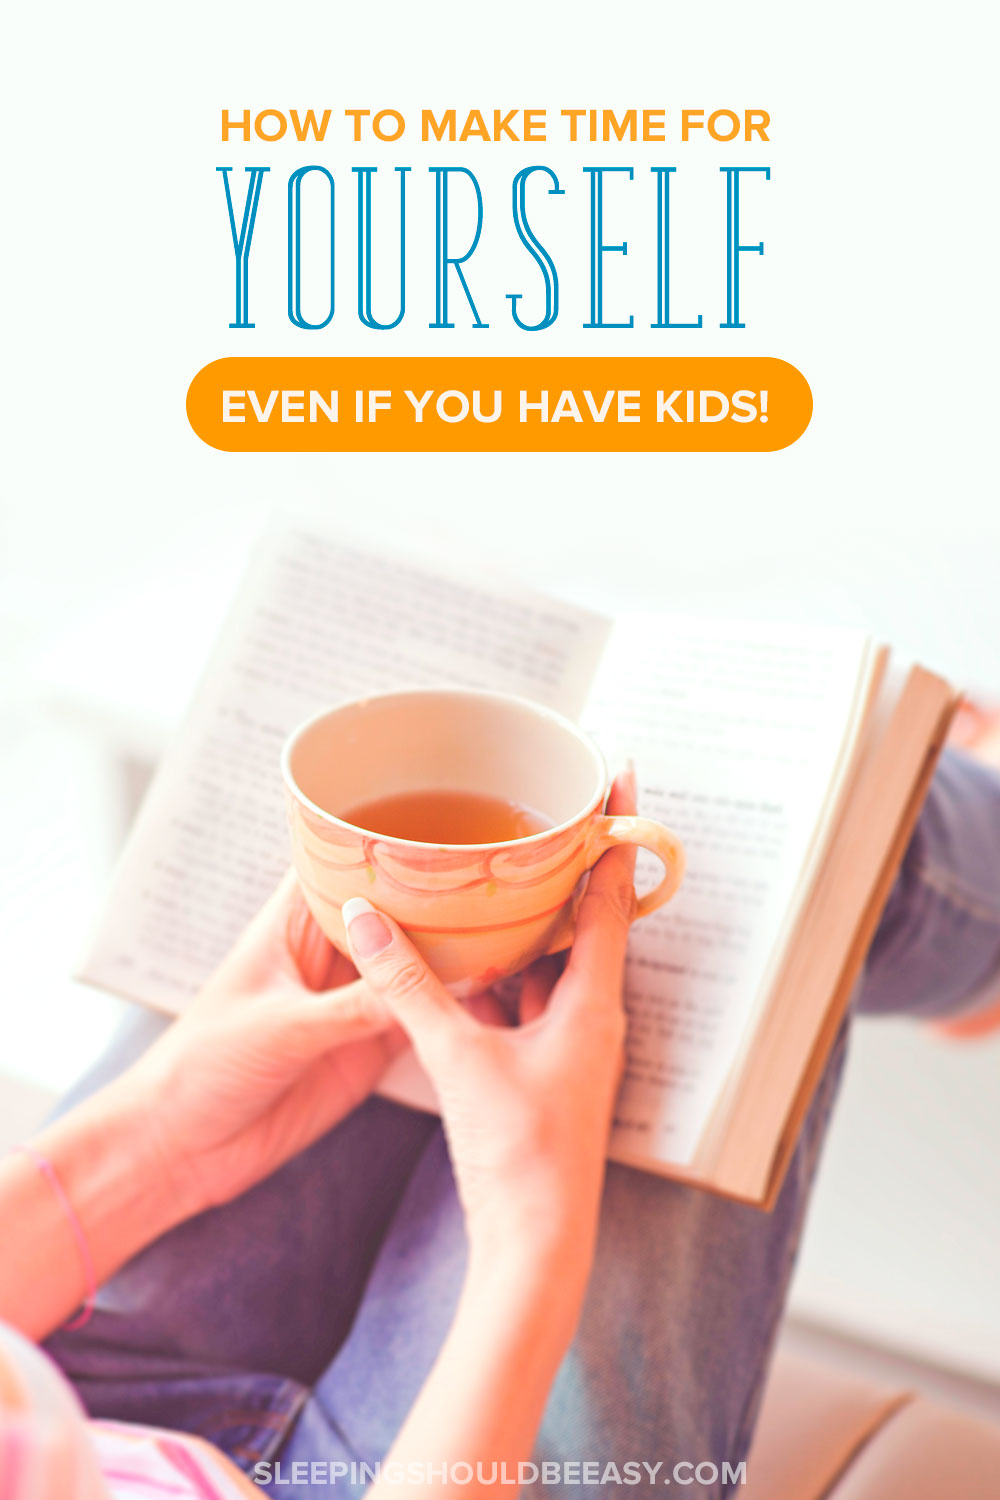 Moms, Here's How To Make Time For Yourself Even With Kids